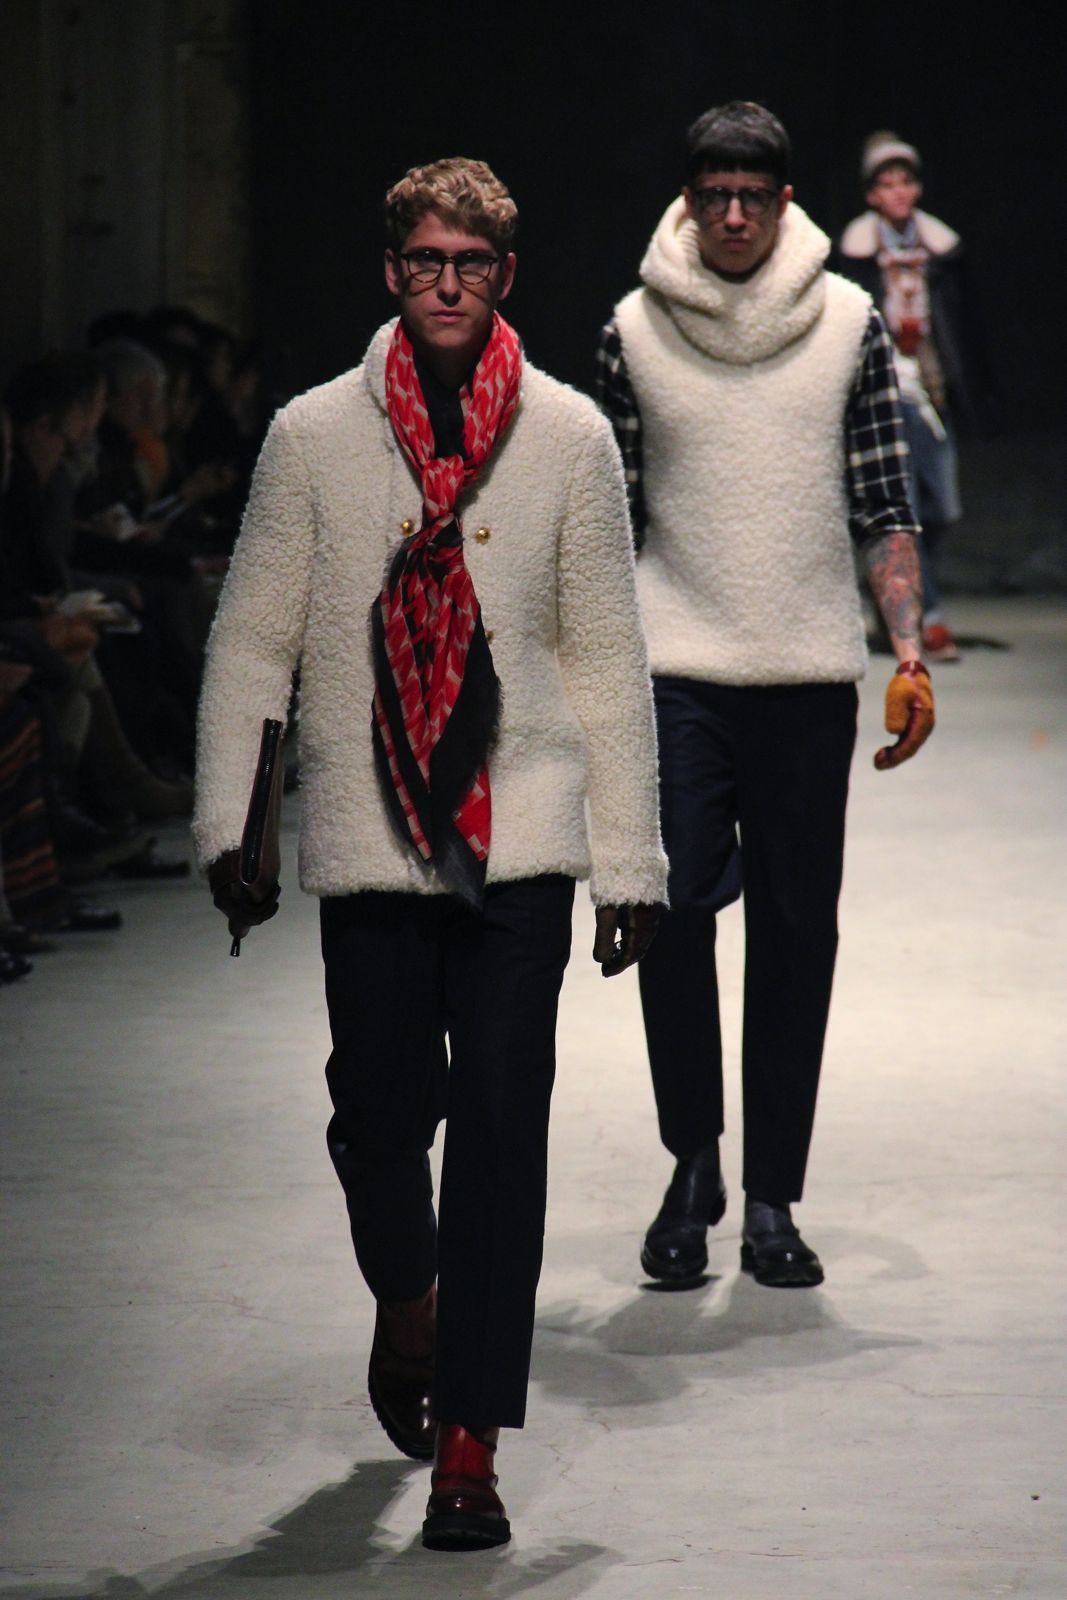 Andrea Pompilio Men Collection Fall Winter 2012-13 Pitti Immagine Uomo